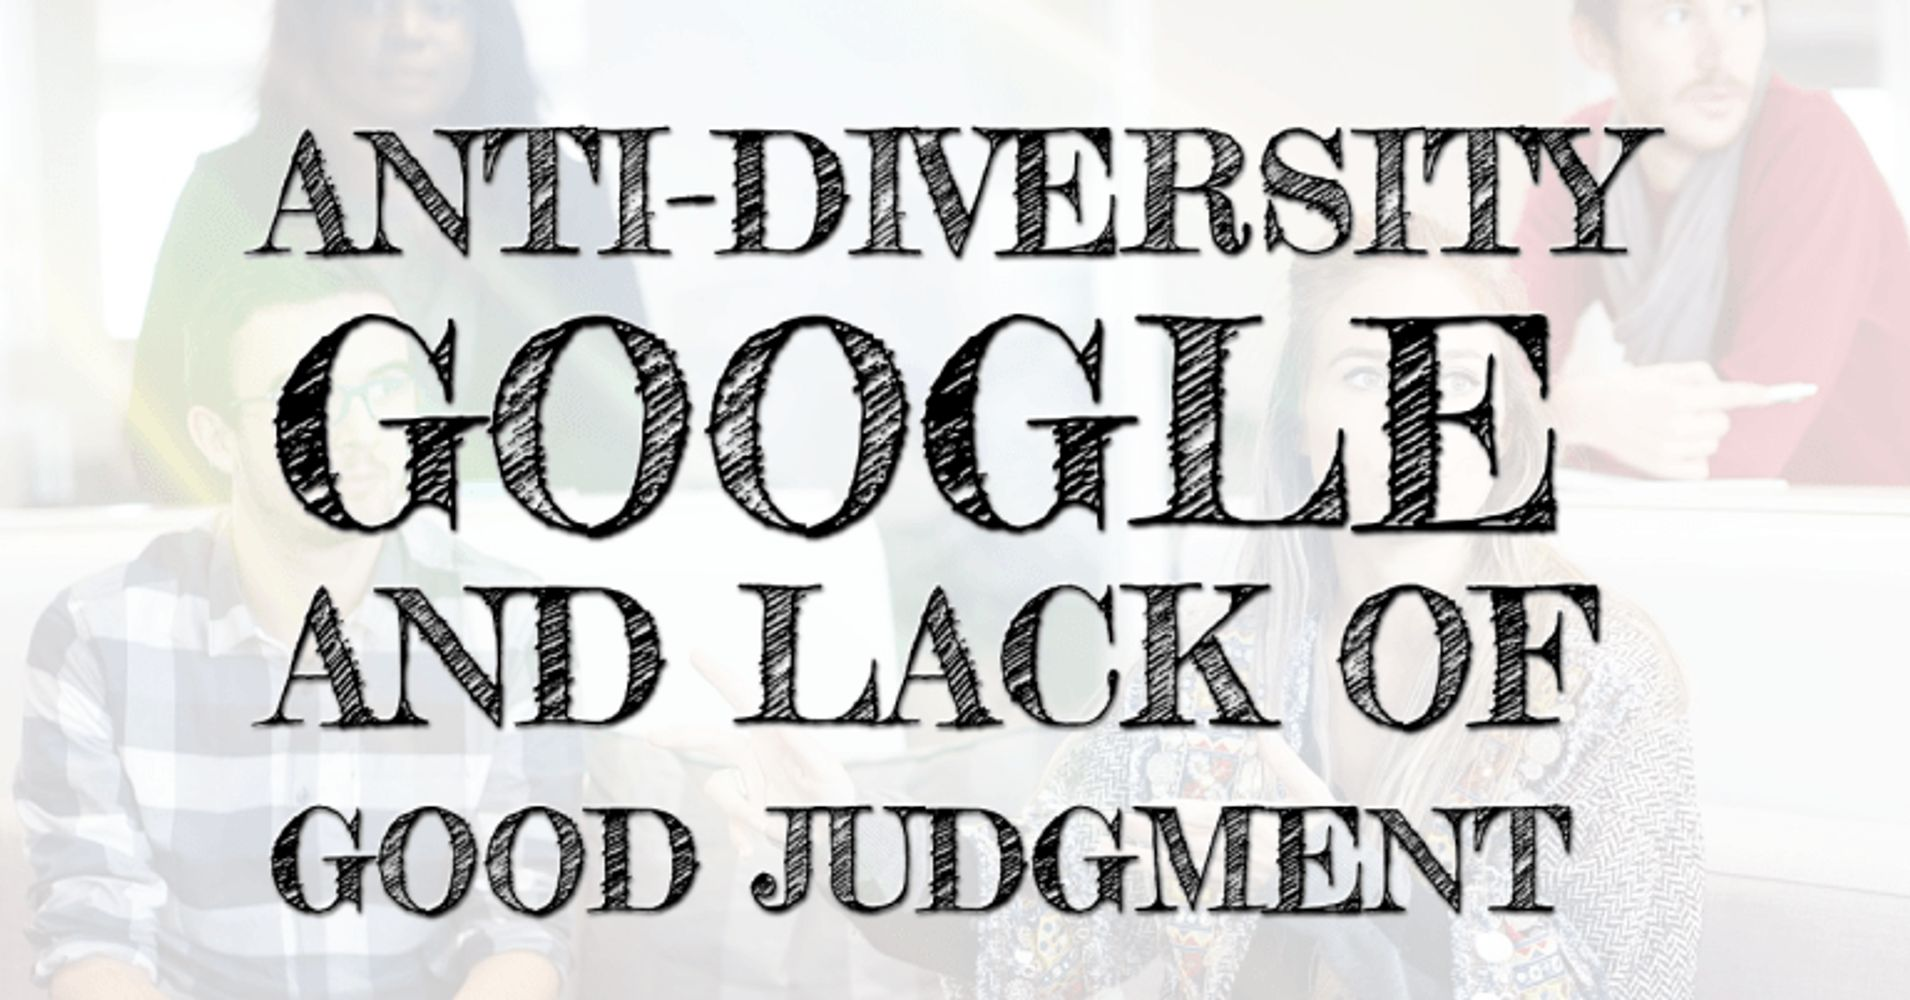 Anti-Diversity, Google, And Lack Of Good Judgment | HuffPost